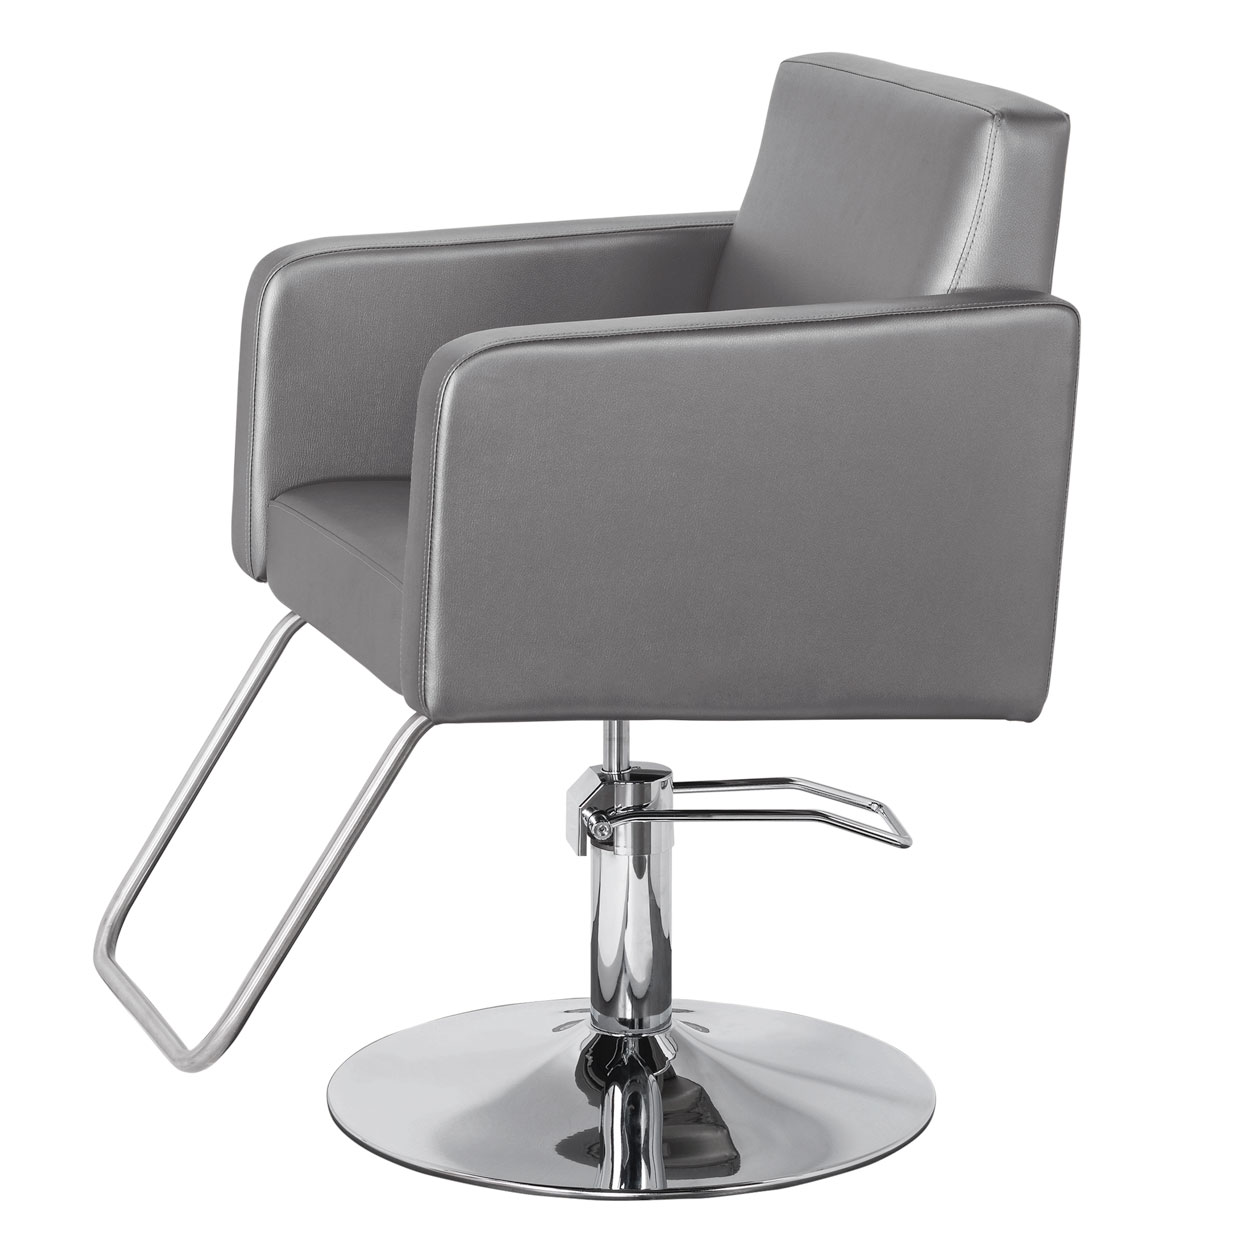 Modin Hair Salon Styling Chair in Grey or White alternative product image 1